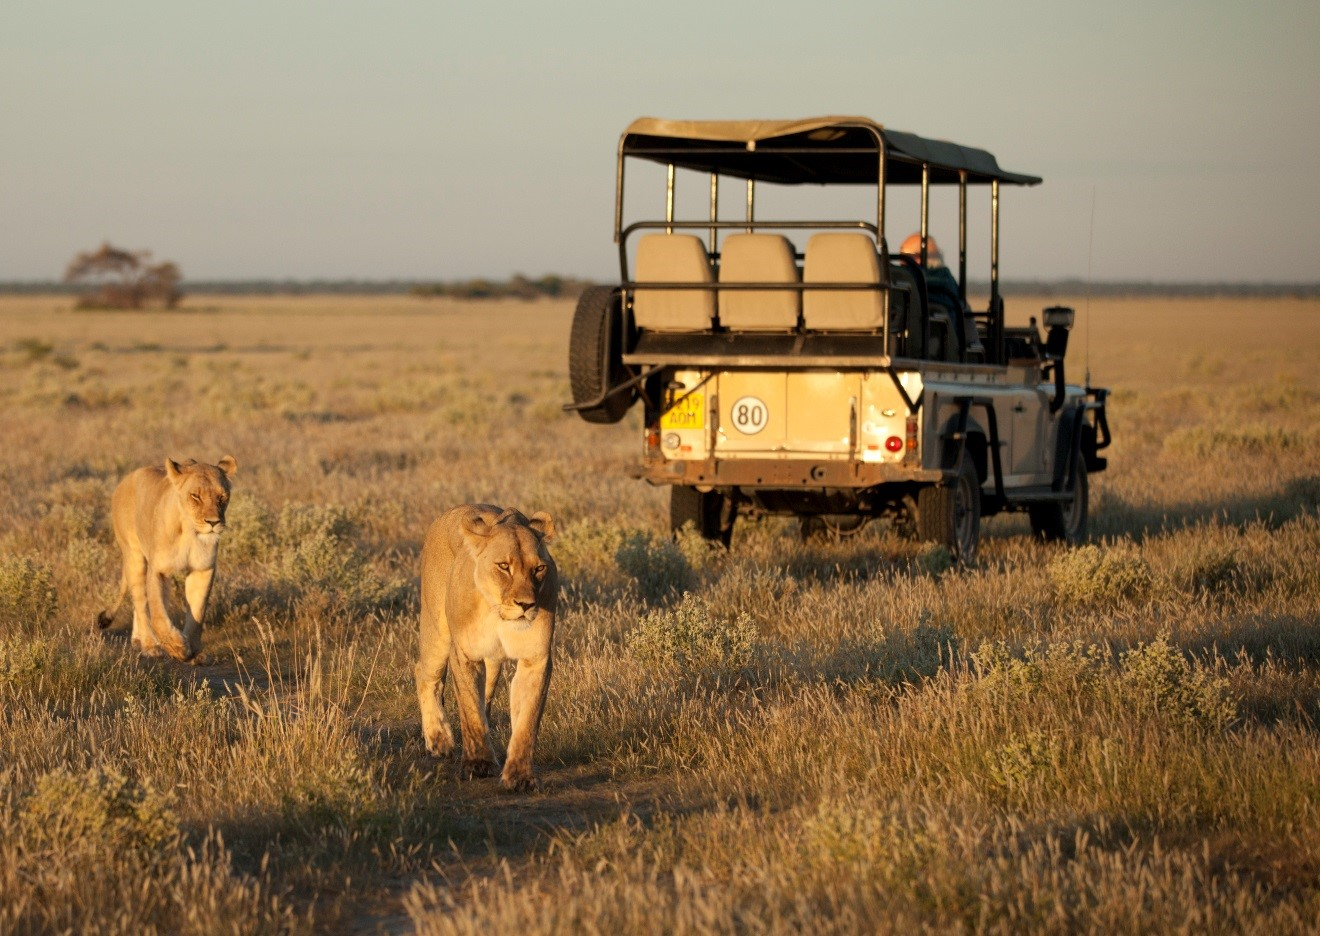 female lions prowl around a safari vehicle in Botswana